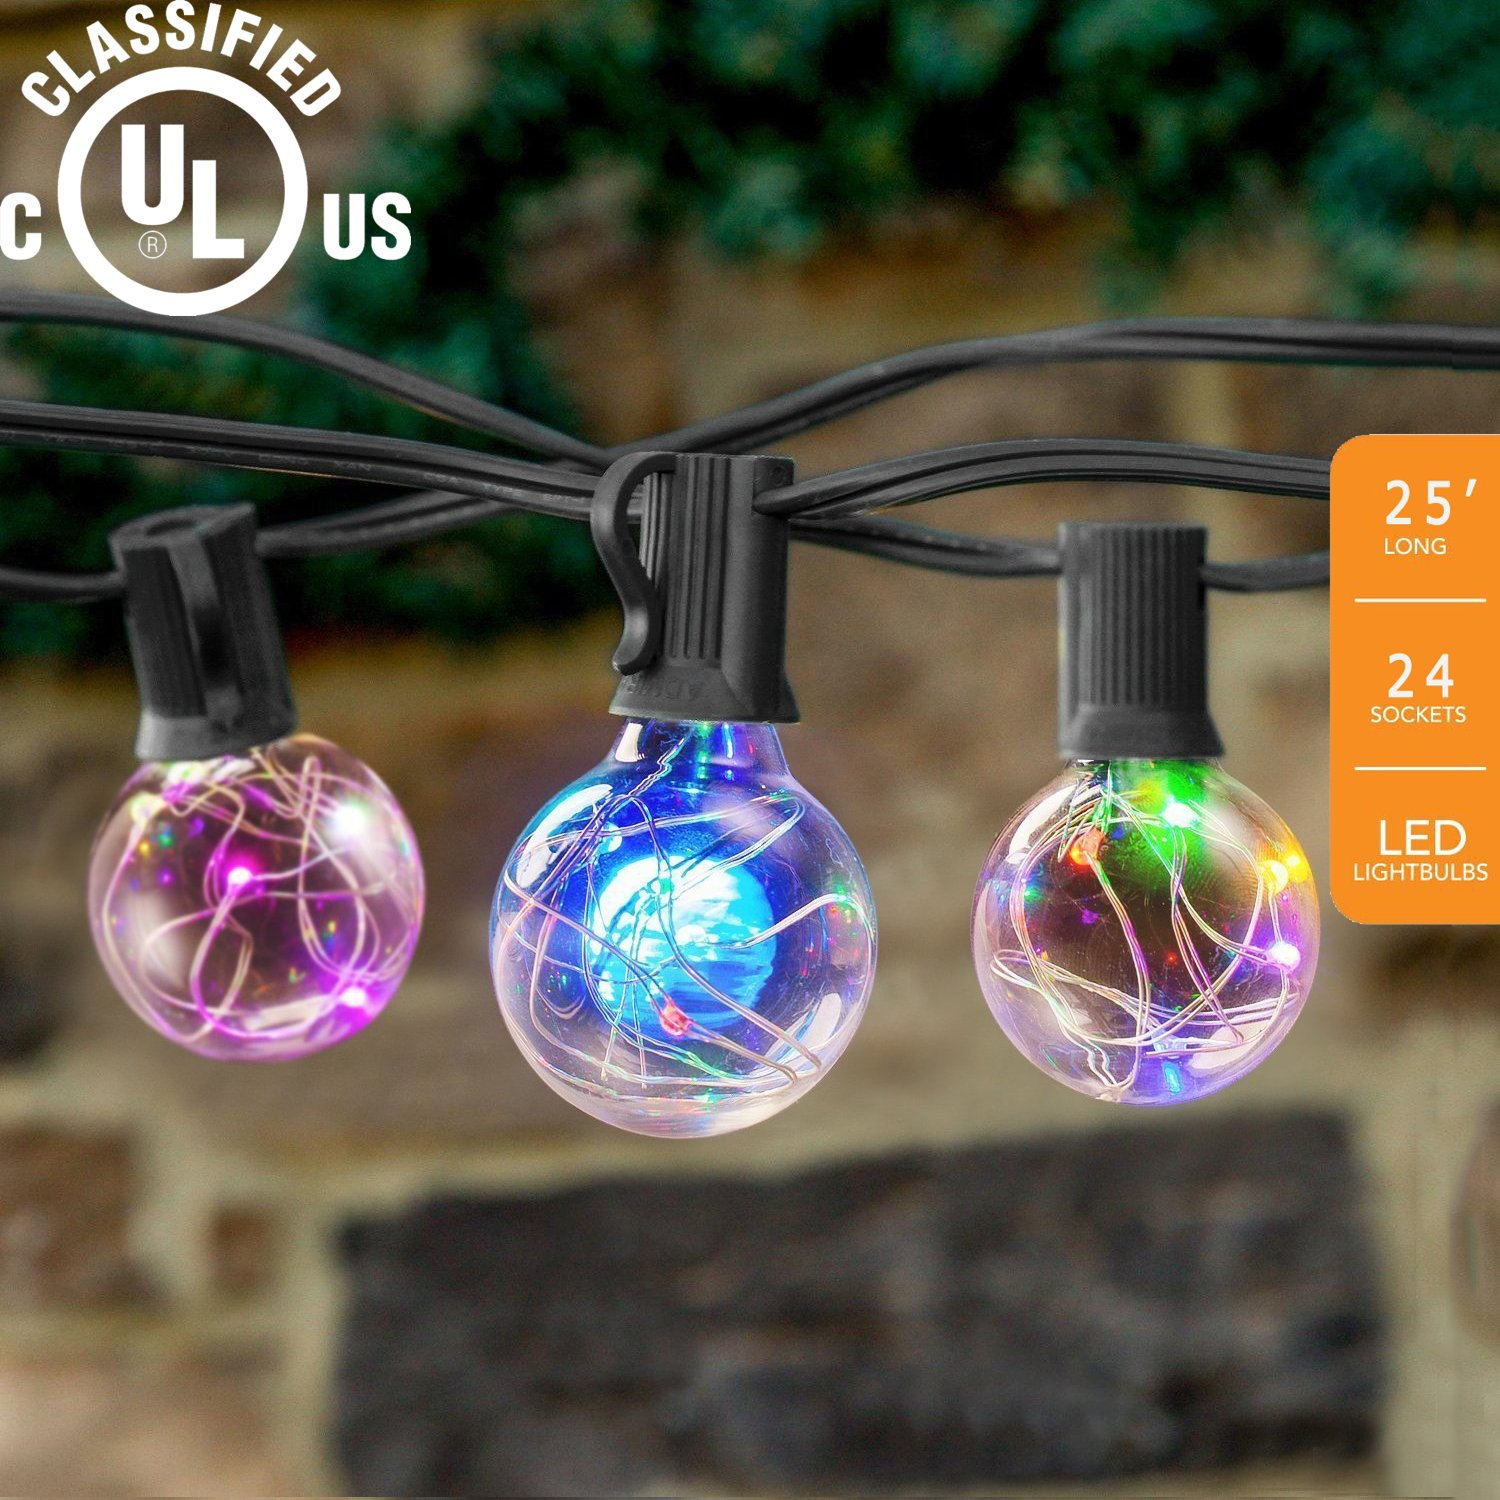 FURNIZONE 25Ft LED Globe Lights Backyard Patio 27 Bulbs Globe String Lights UL Listed Indoor String Light Hanging Garden Light Pergola Market Cafe Bistro Pool Light Multi Color